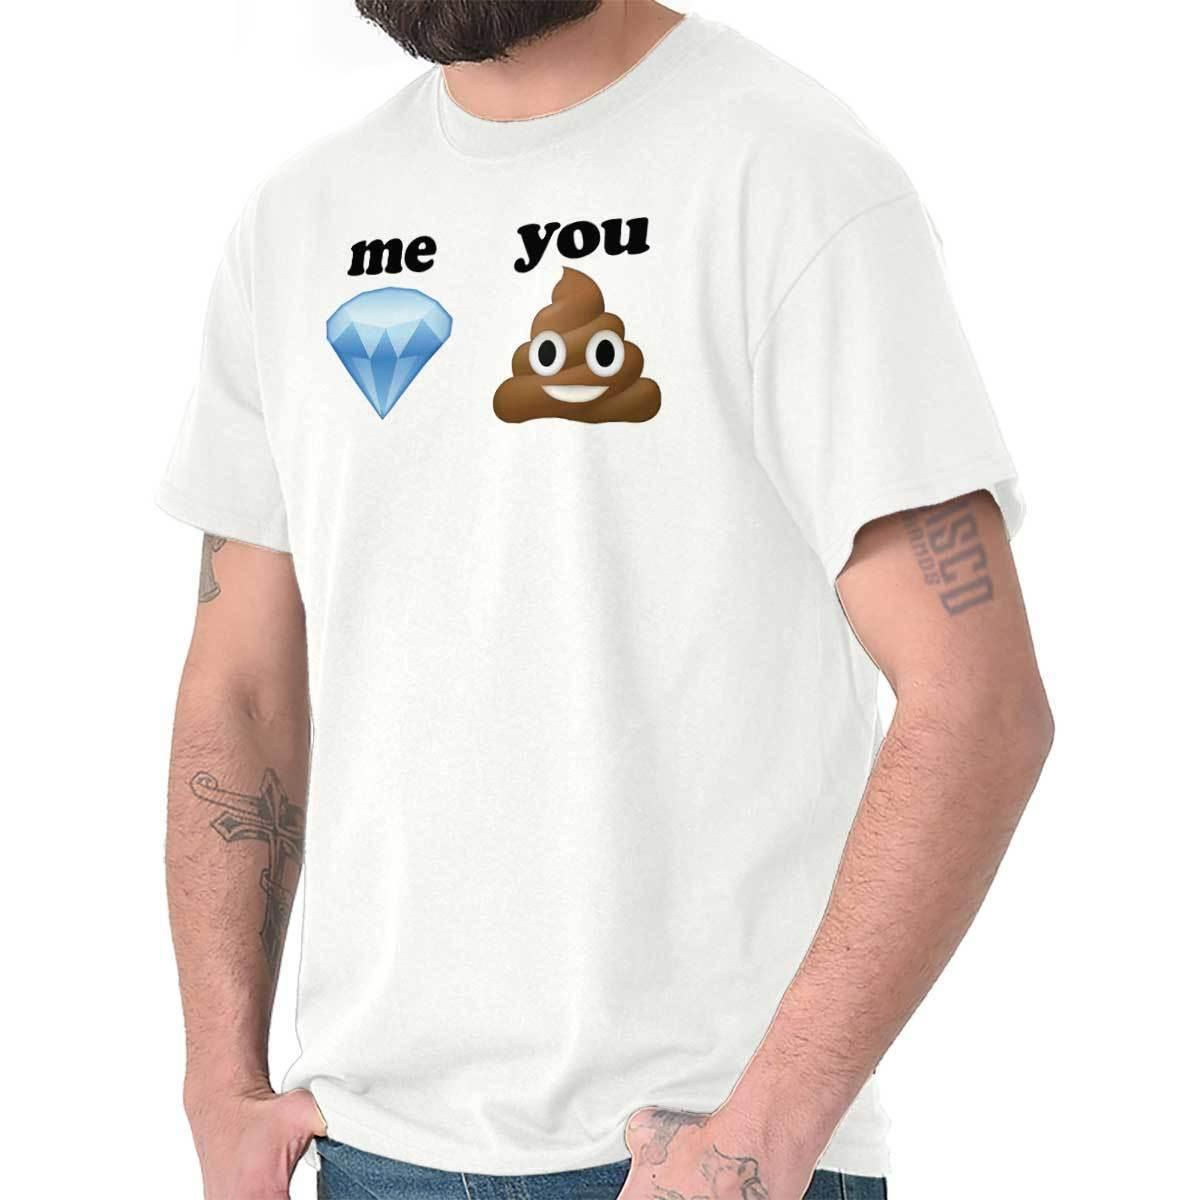 35d8b92a1e Me Diamond You Poop Emoji | Turd Funny Meme Emoticon T-Shirt Men Women  Unisex Fashion tshirt Free Shipping